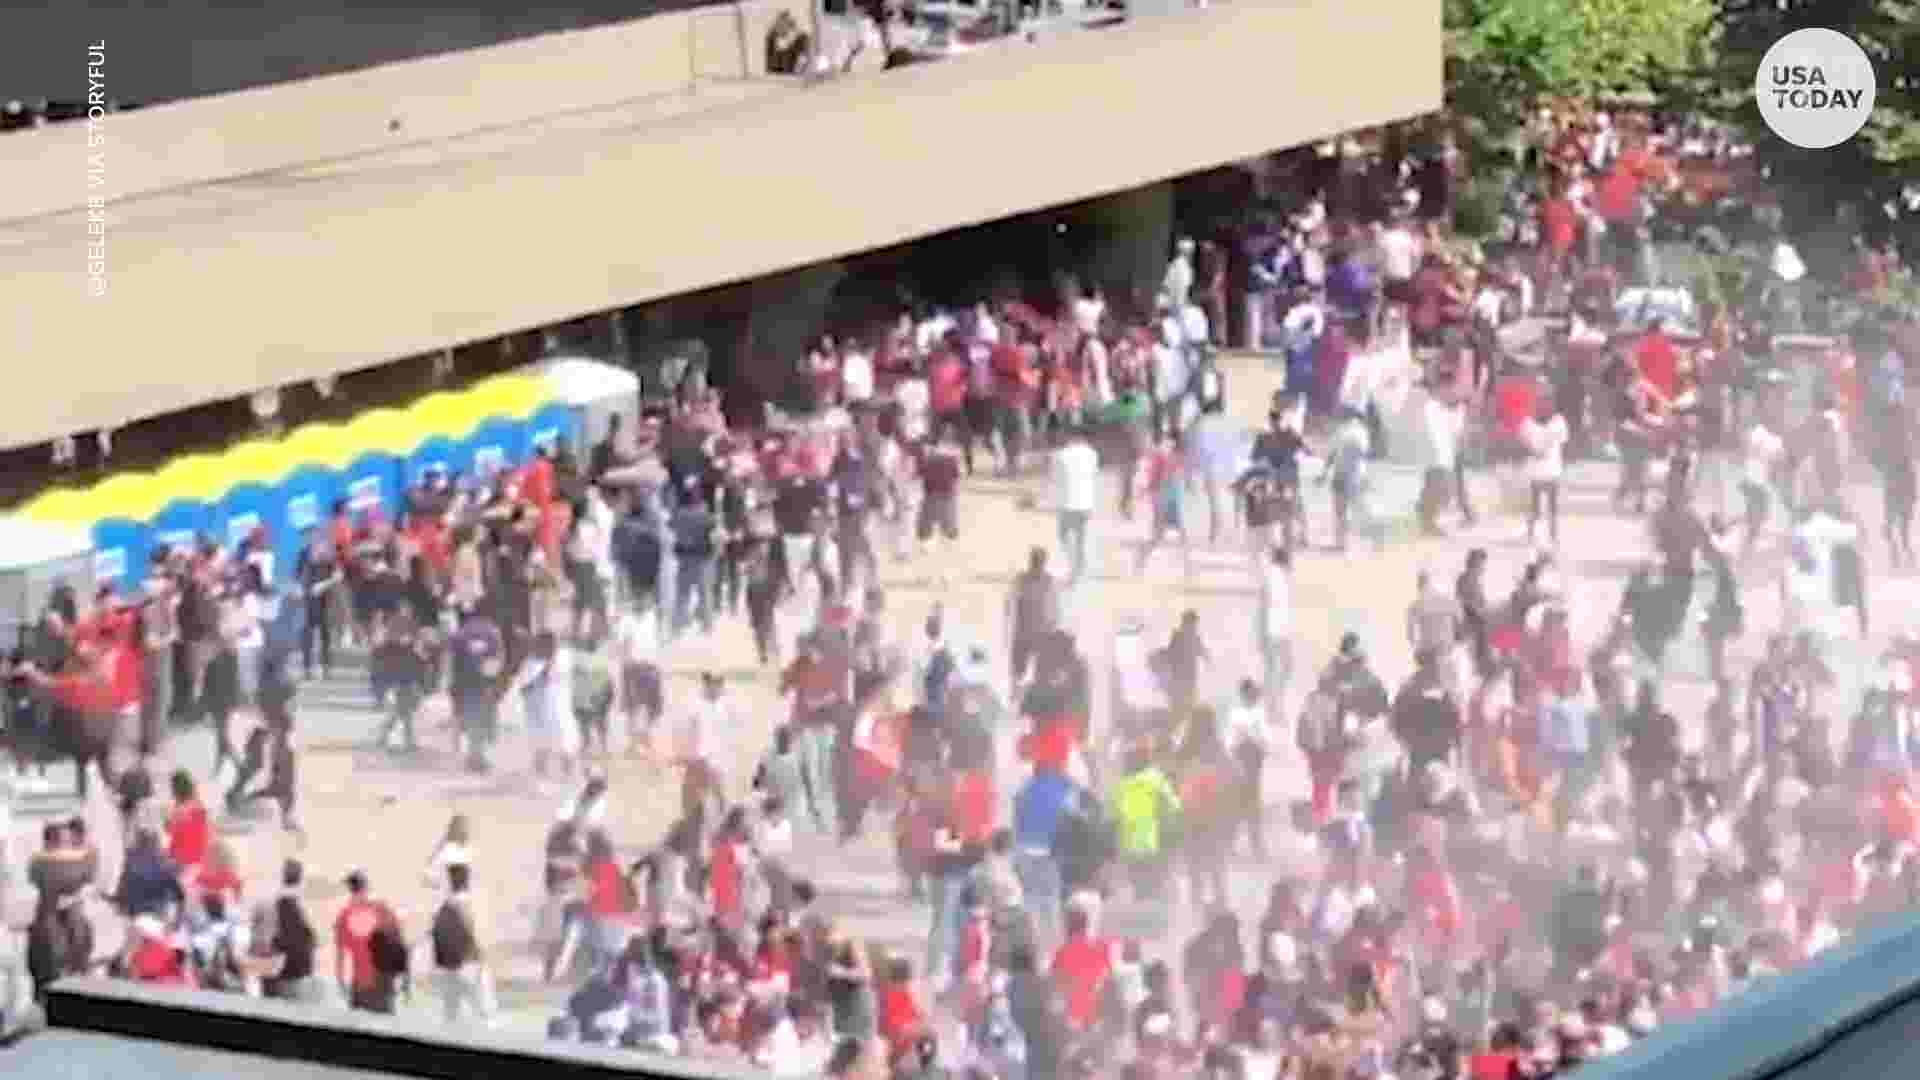 Video shows thousands running after shots fired during Toronto Raptors'  parade celebration